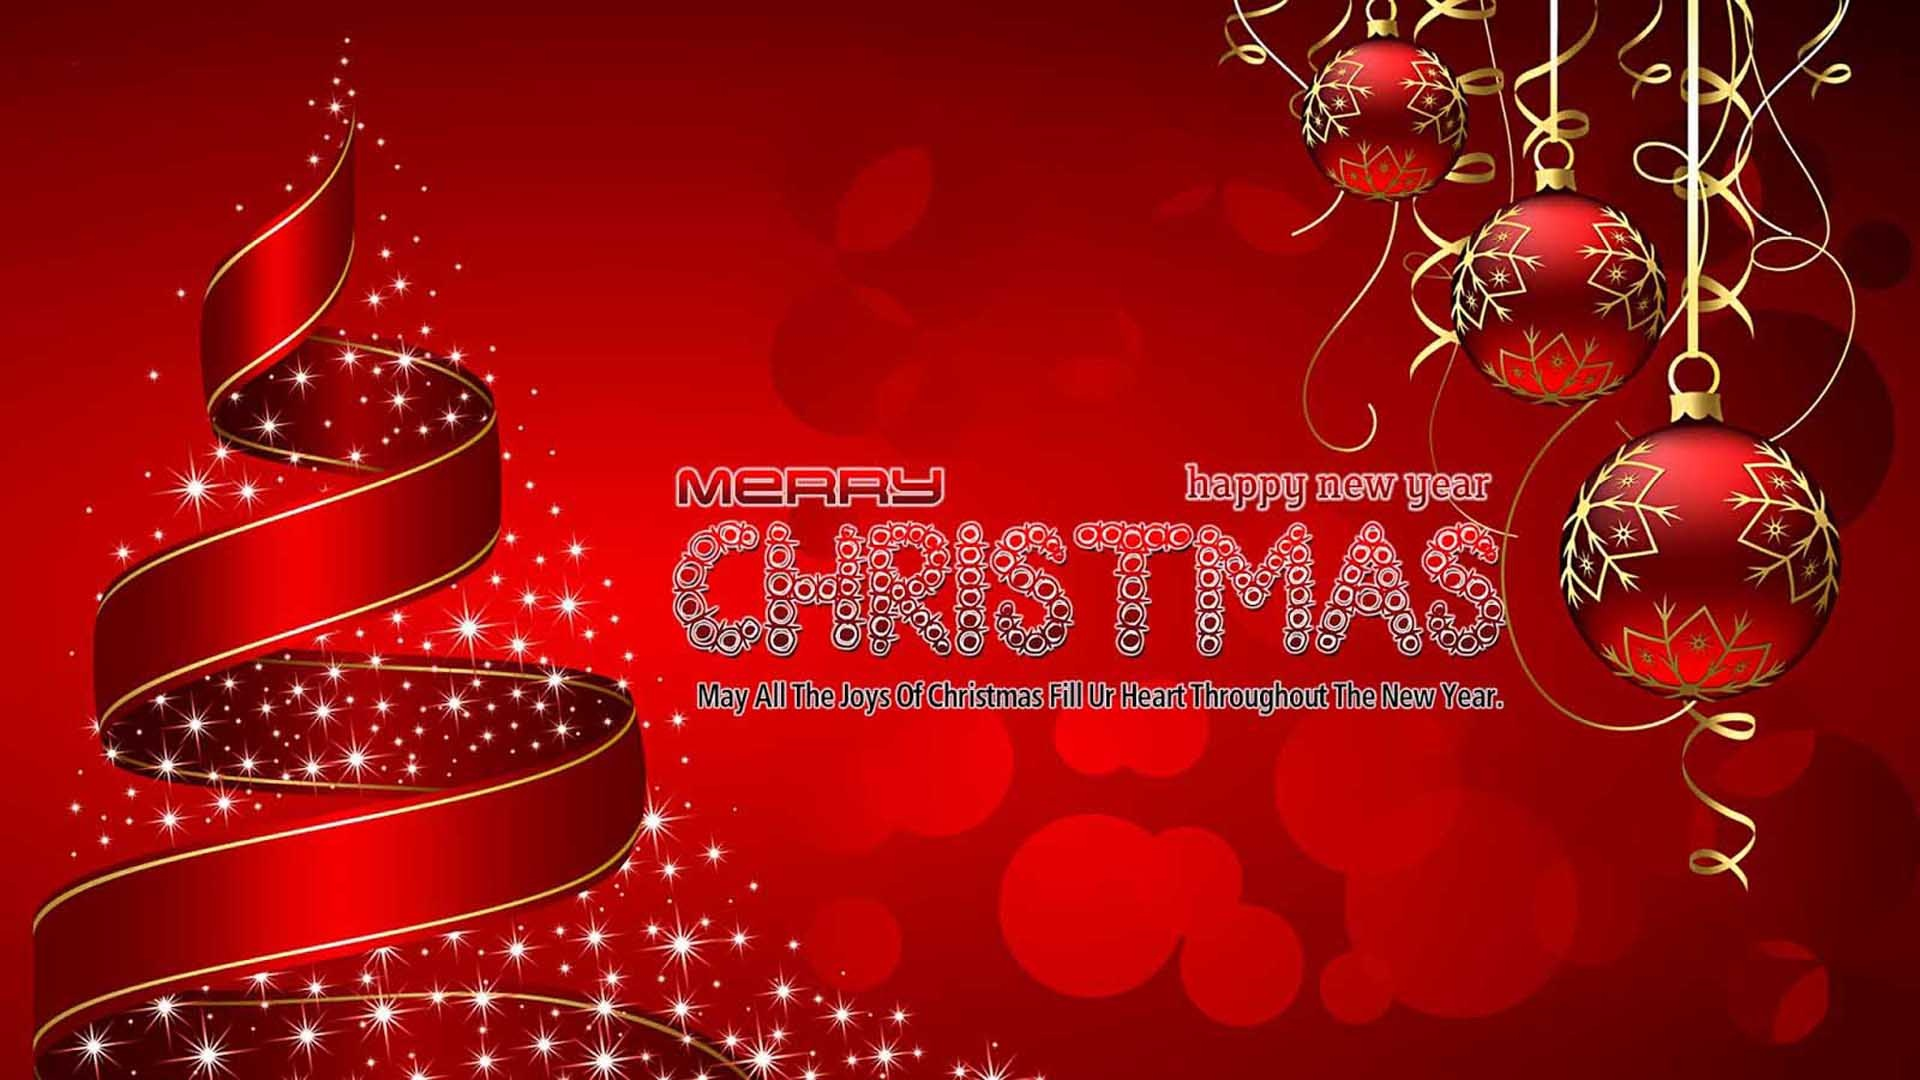 Merry Christmas Happy New Year 2020 Christmas Greetings Desktop Hd 1920x1080